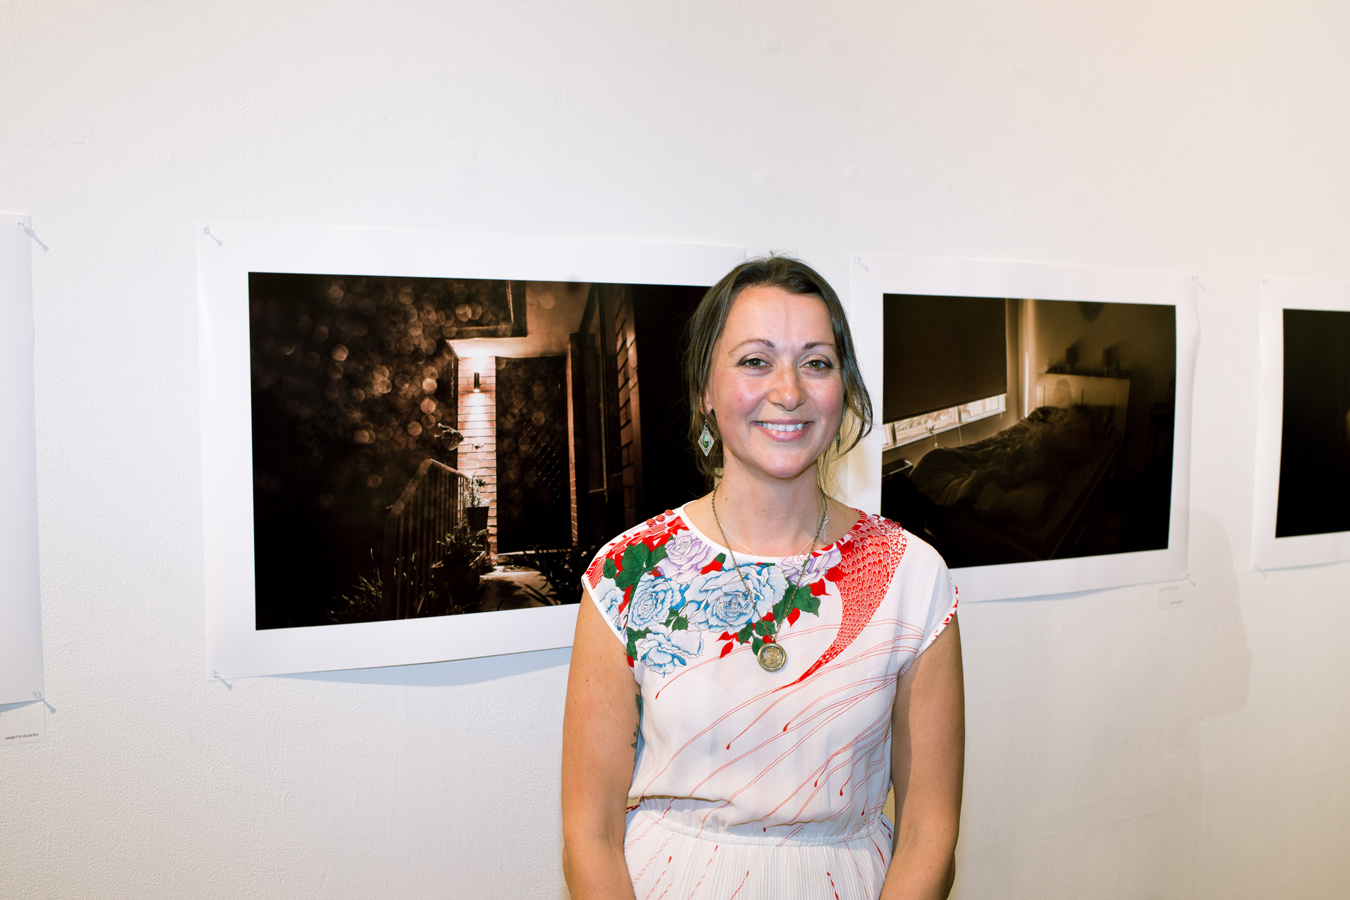 Annette Ruzicka, winner of the 2017 SUNSTUDIOS Emerging Photographer Award in Sydney.